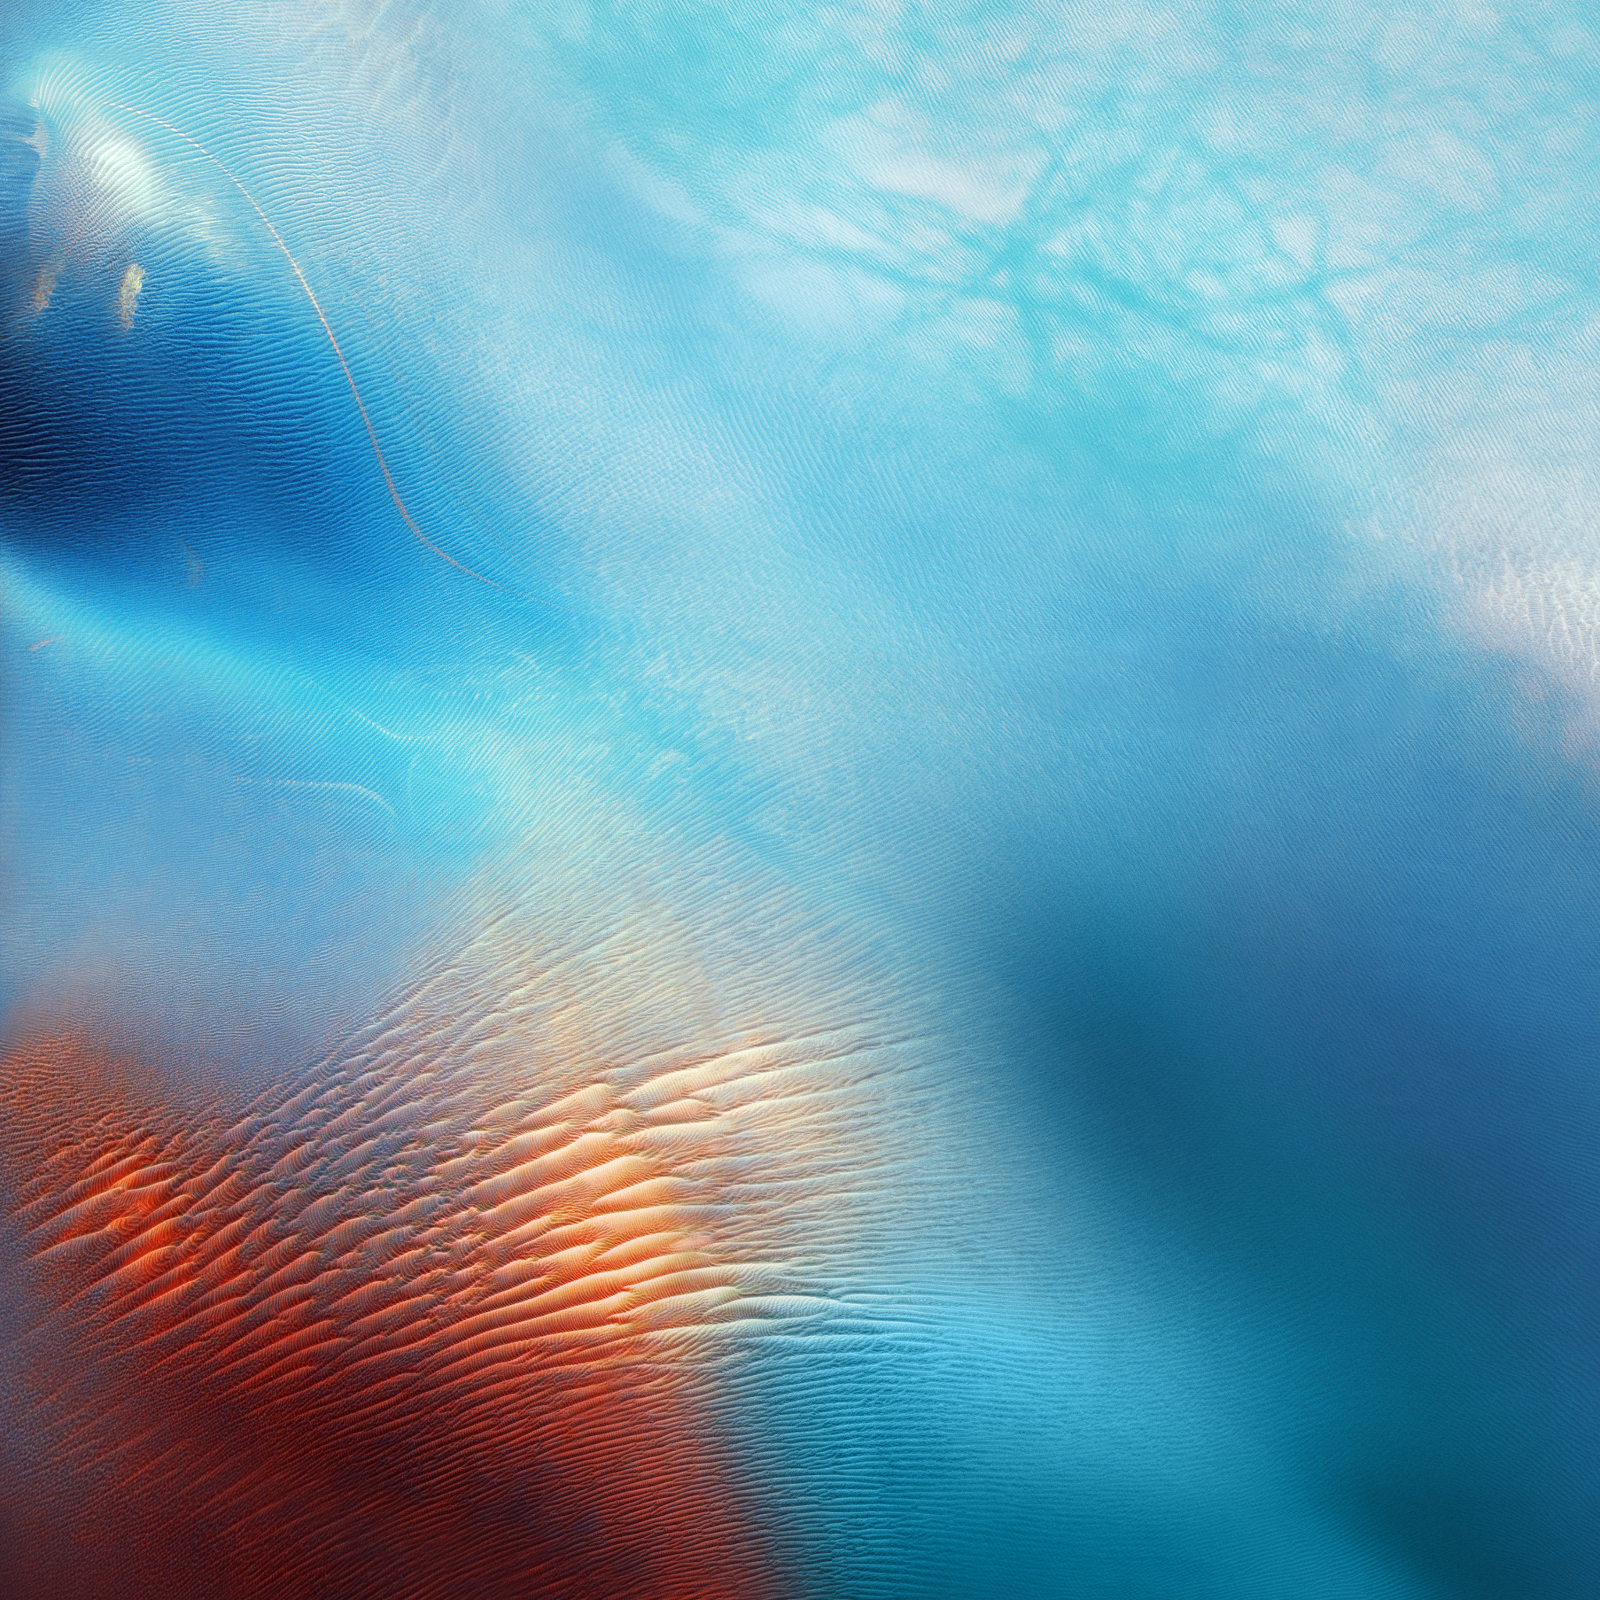 Ios 9 Wallpapers Top Free Ios 9 Backgrounds Wallpaperaccess